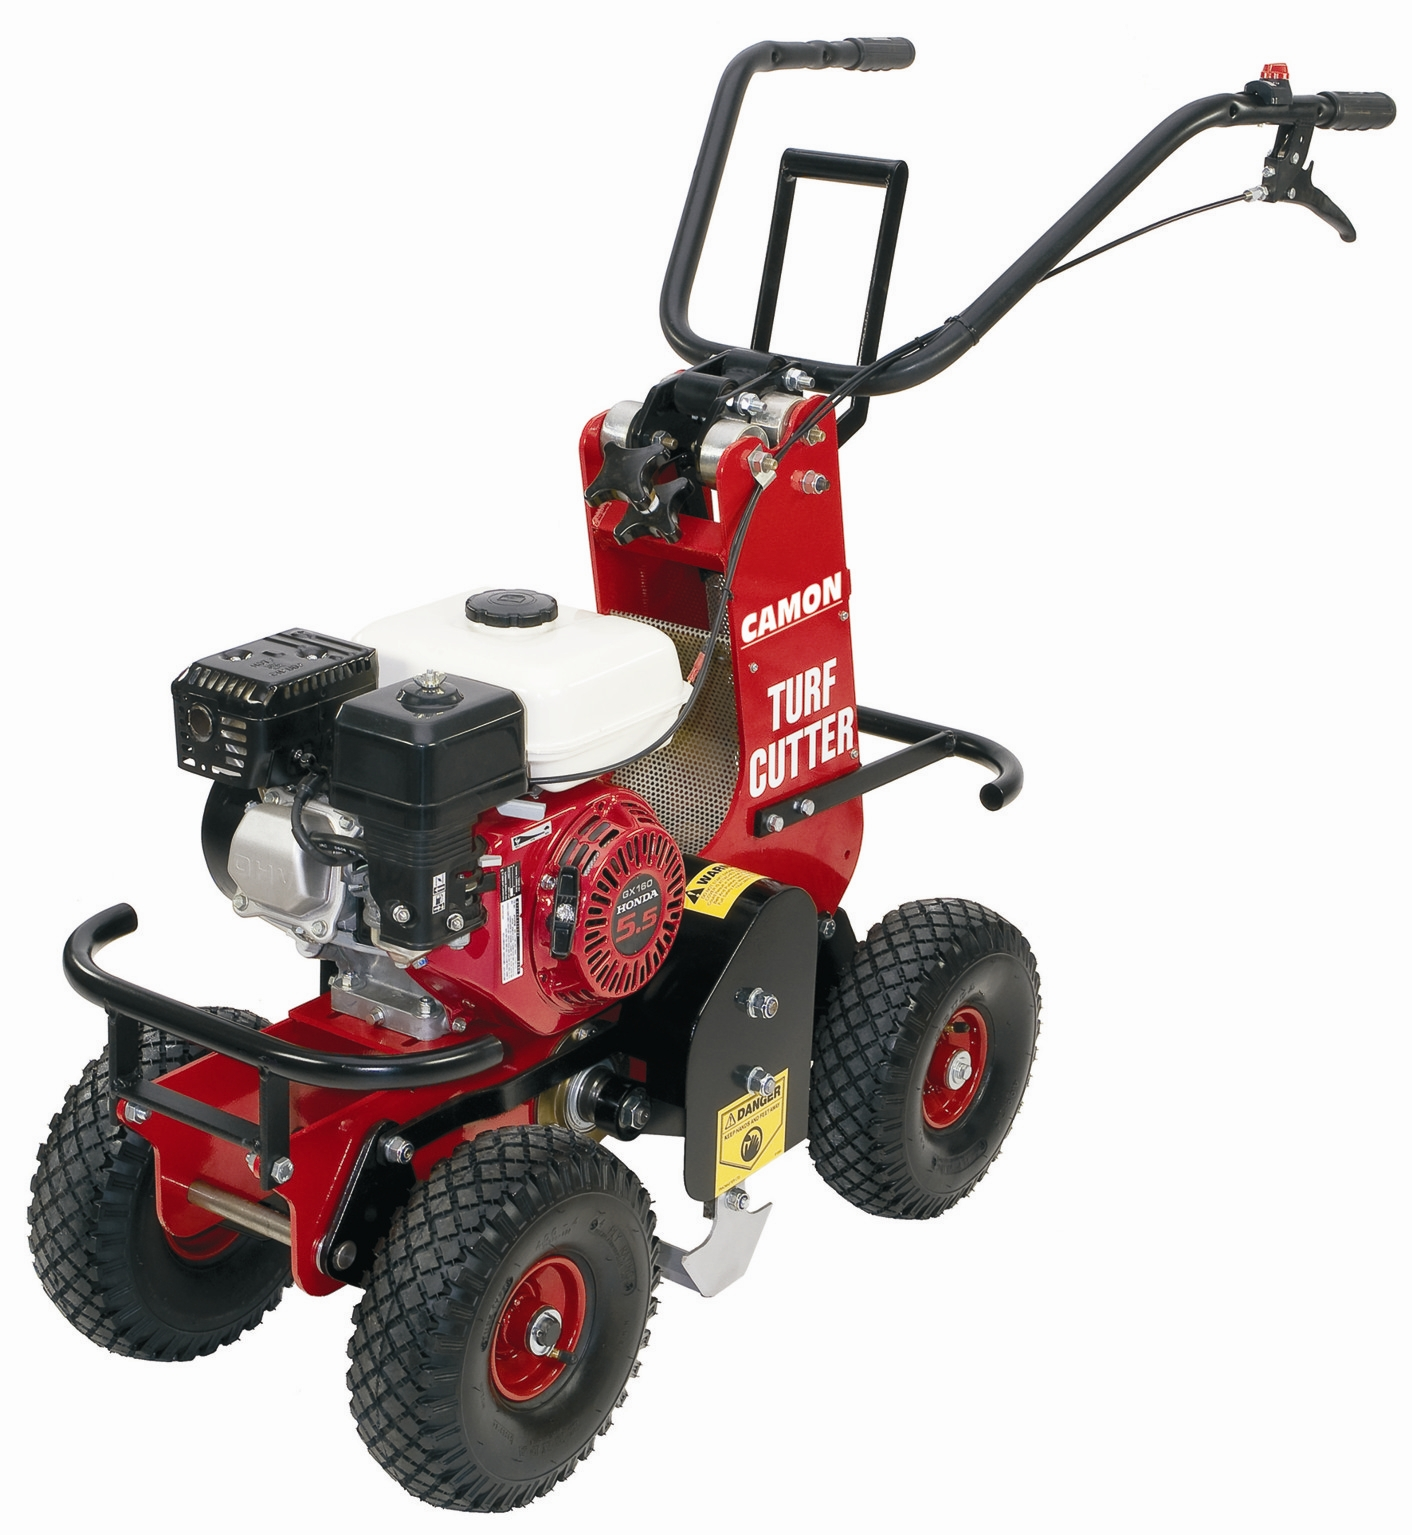 camon-tc07-turf-cutter